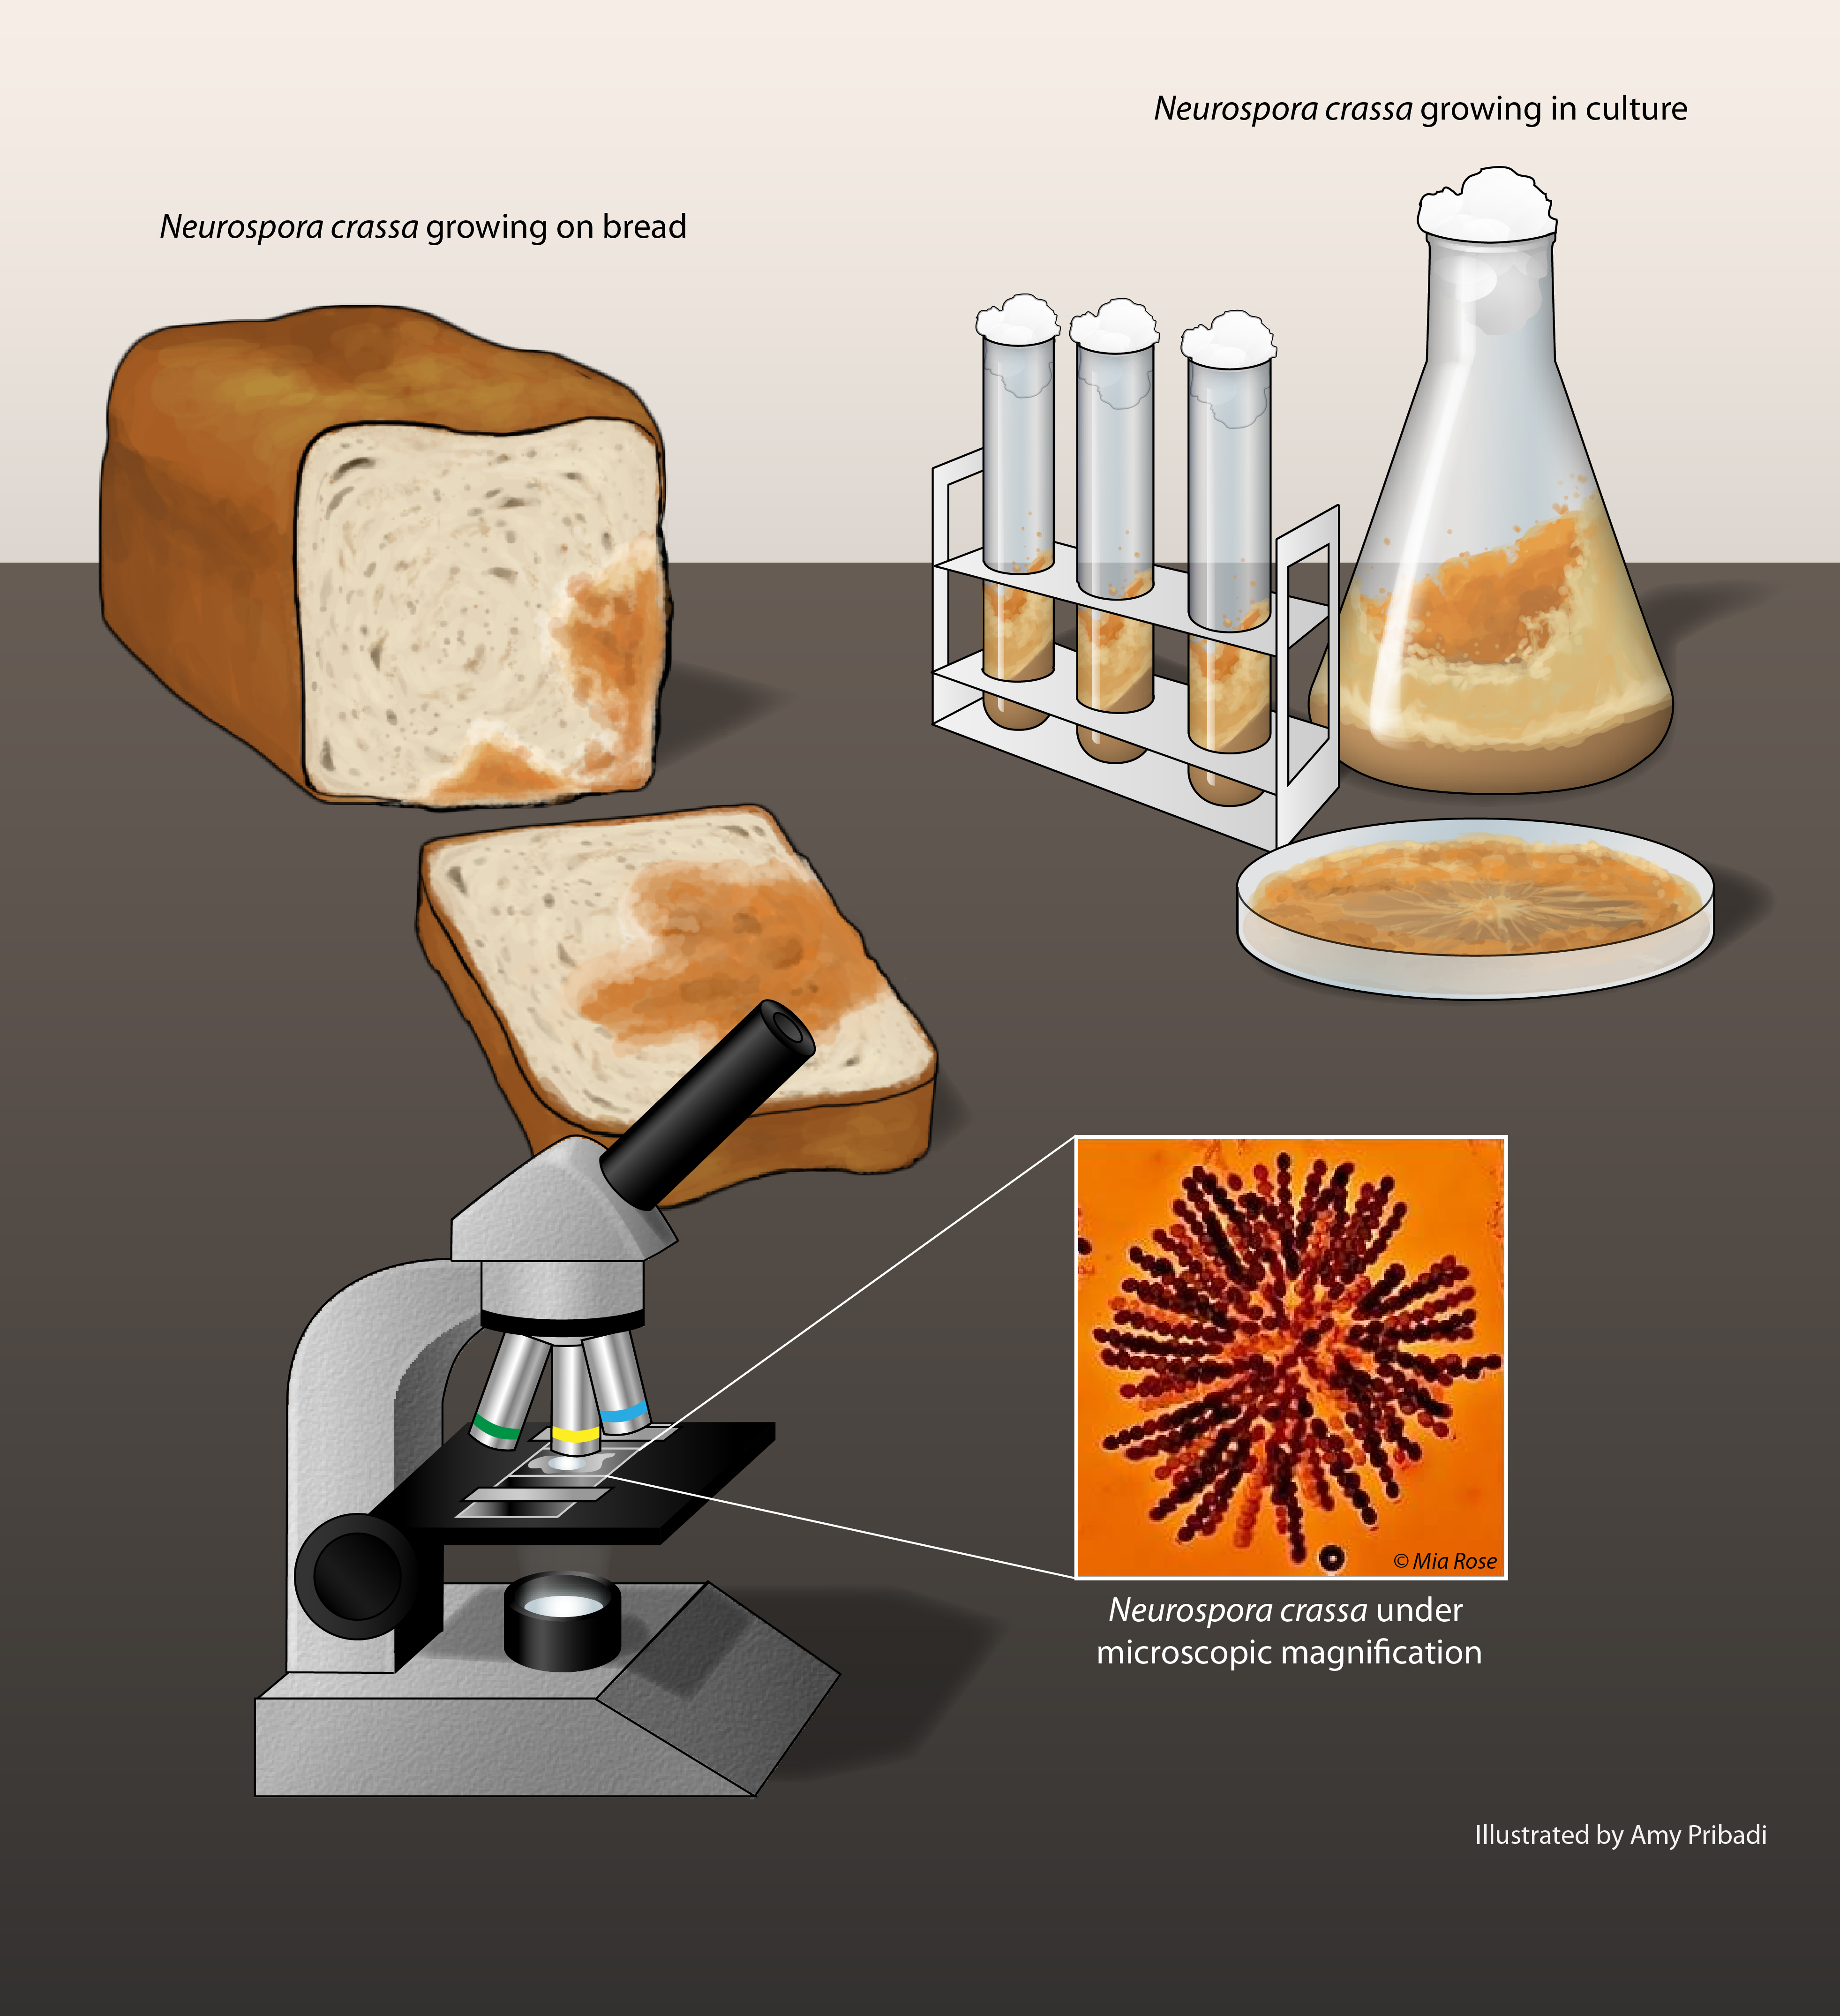 Object Is A Digital Image It Displays A Laboratory Workbench On It Is A Loaf Of Bread With Bread Mold Growing On It There Is Also A Set Of Beakers